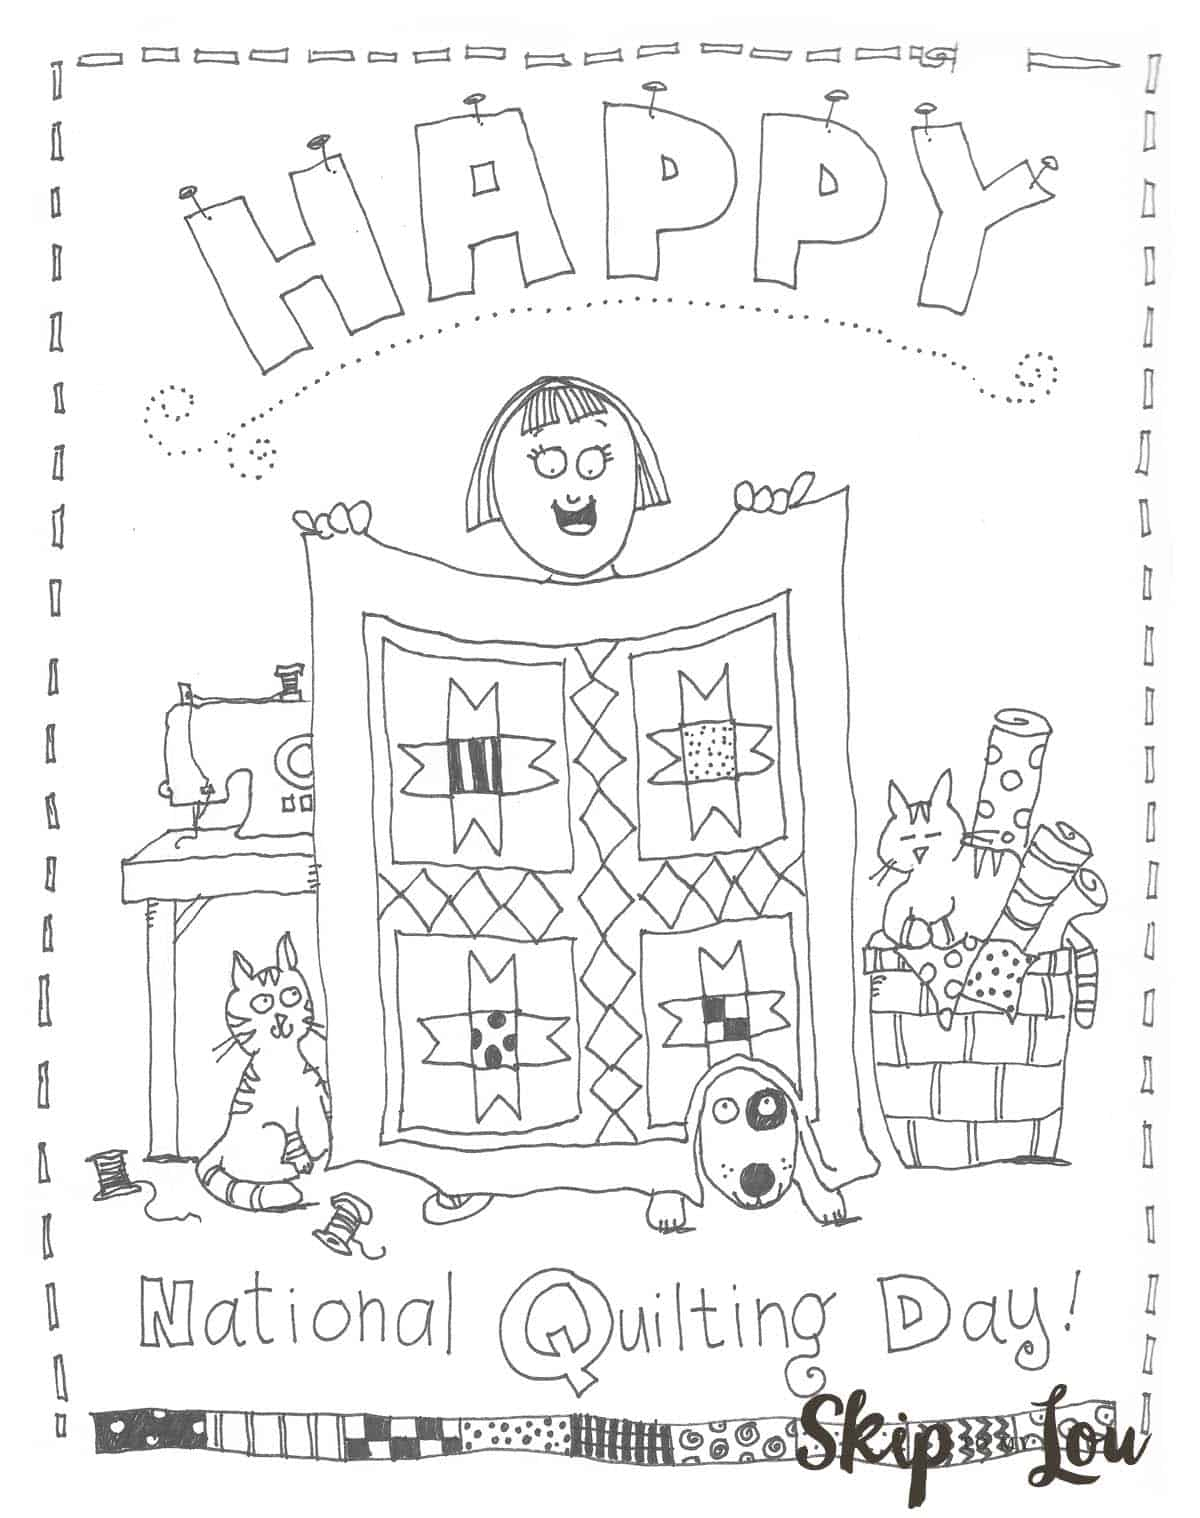 National Quilting Day Coloring Page